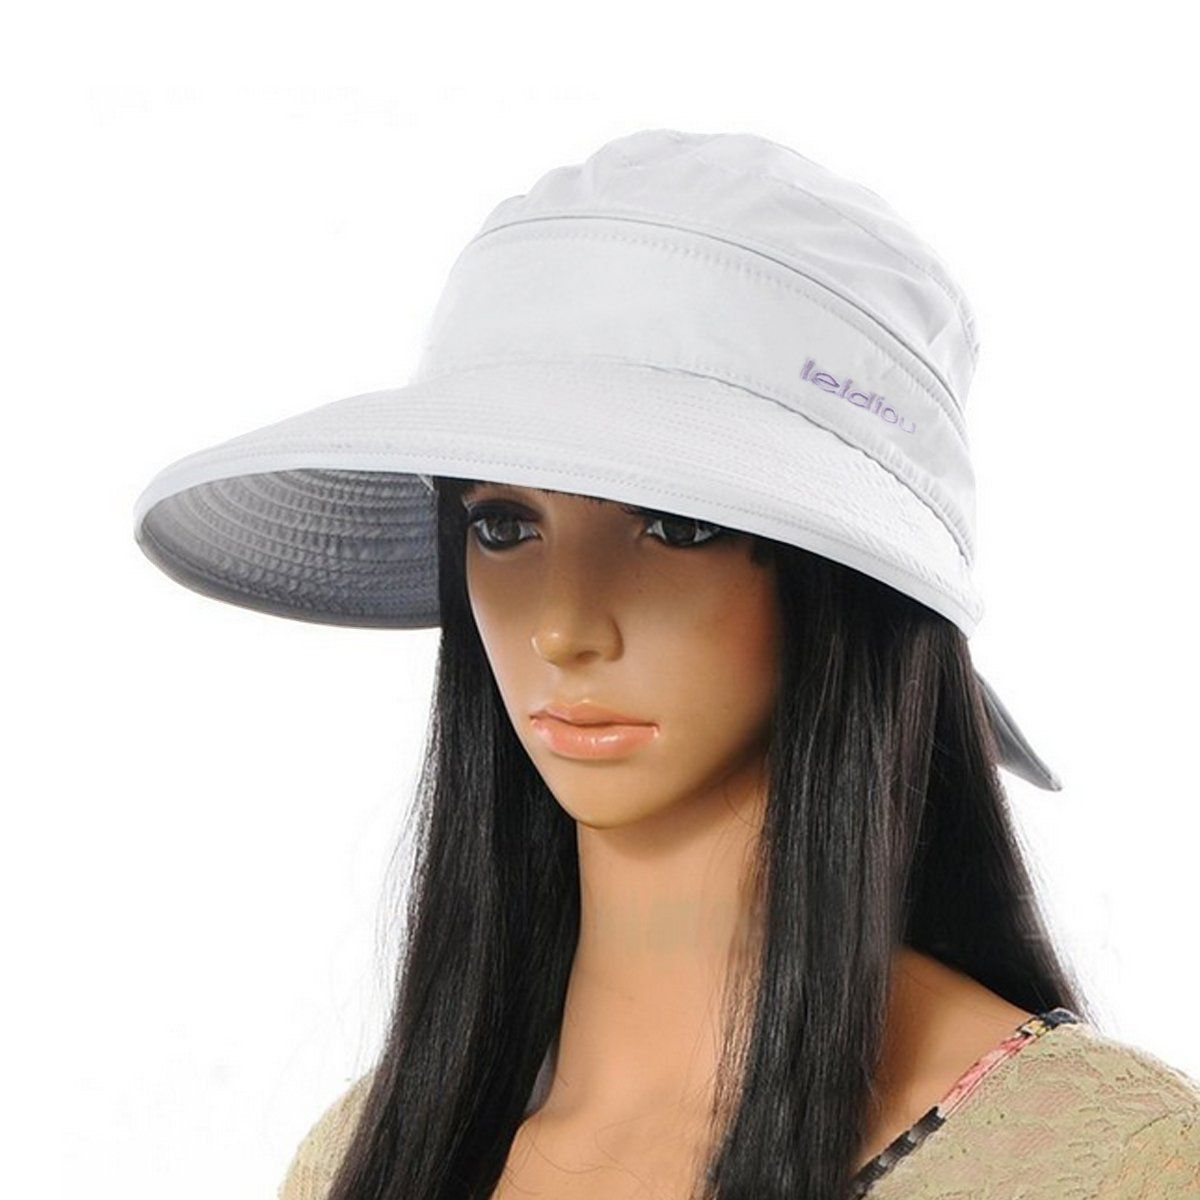 Aisa Women Bowknot Sun Hat Wide Large Brim Visor Hat Cap Summer Beach Hat  Color White. 100% Polyester. Estimated Head  Circumference 20